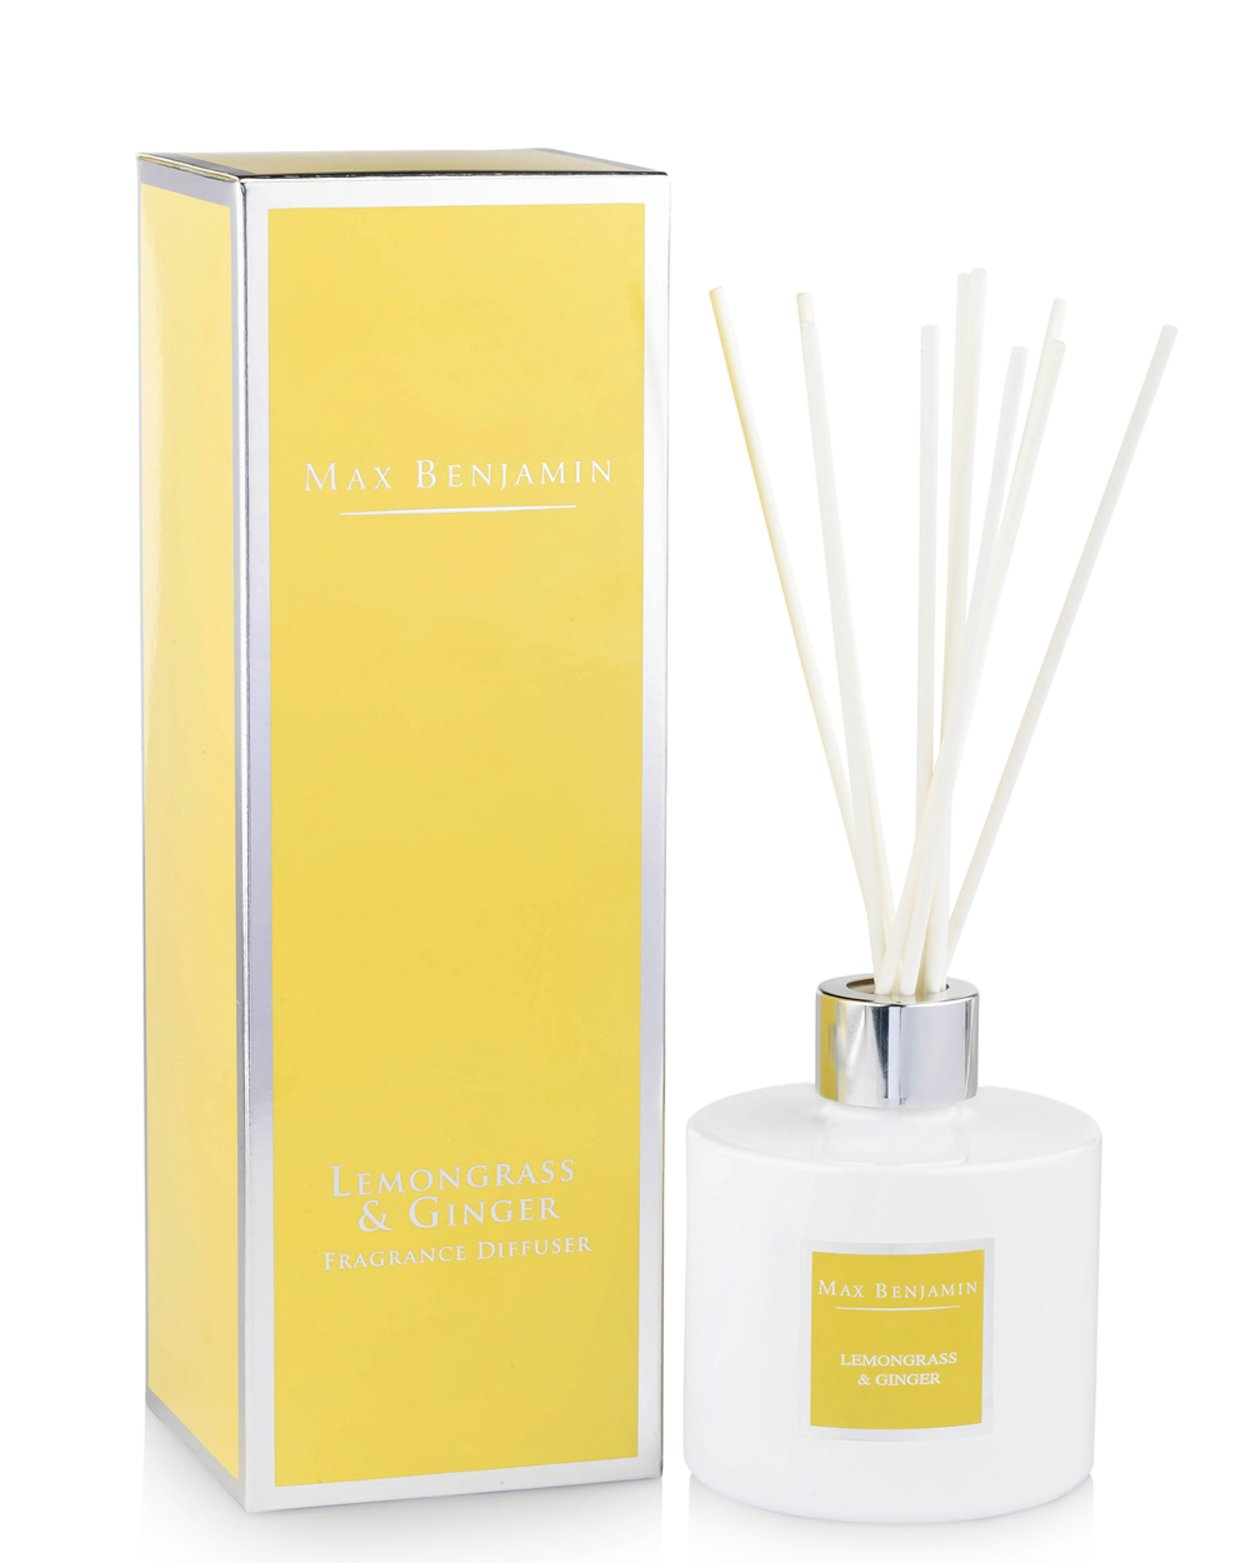 Lemongrass and Ginger Diffuser by Max Benjamin